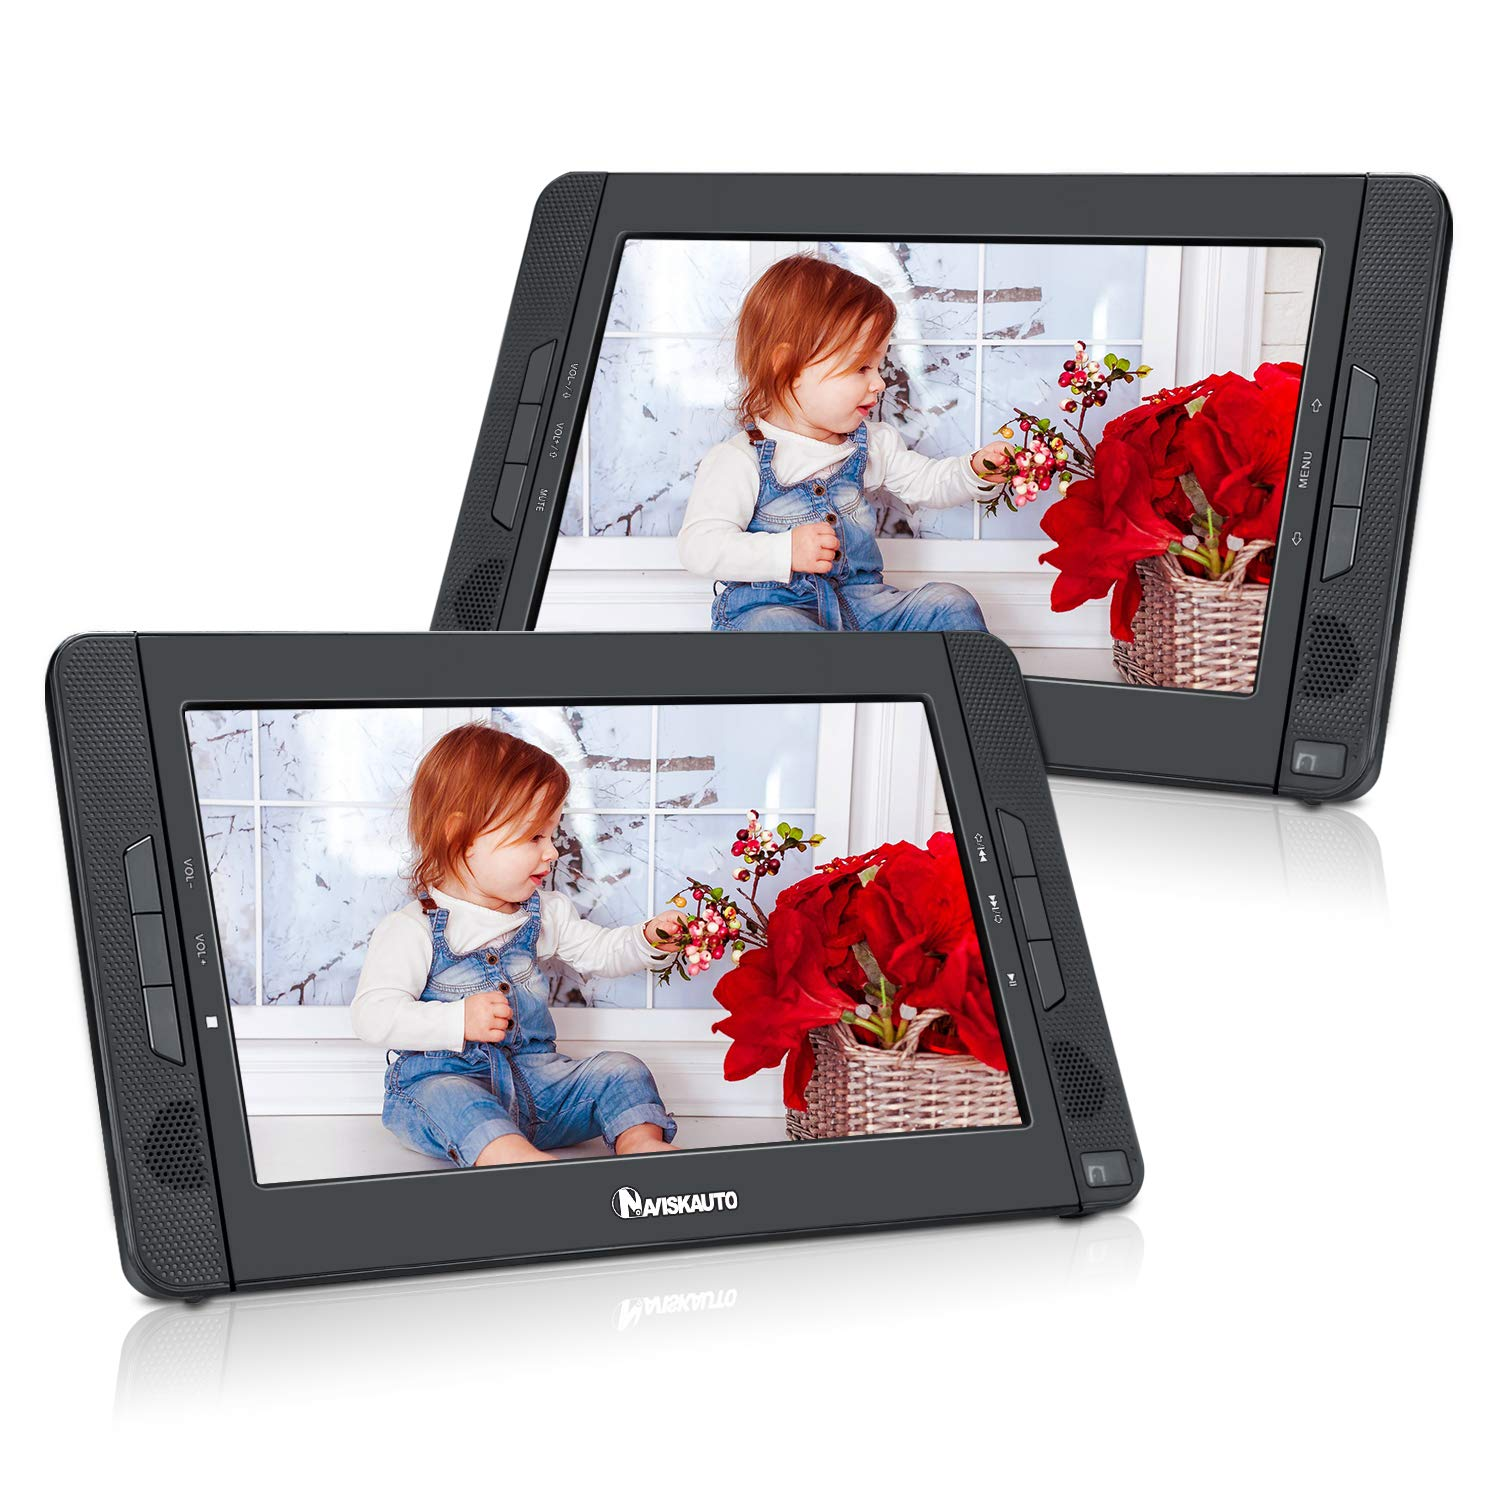 NAVISKAUTO 10.1'' Portable DVD Player Dual Screen for Car, Headrest Video Player with 5-Hour Rechargeable Battery, Sync Playing on Both Screens